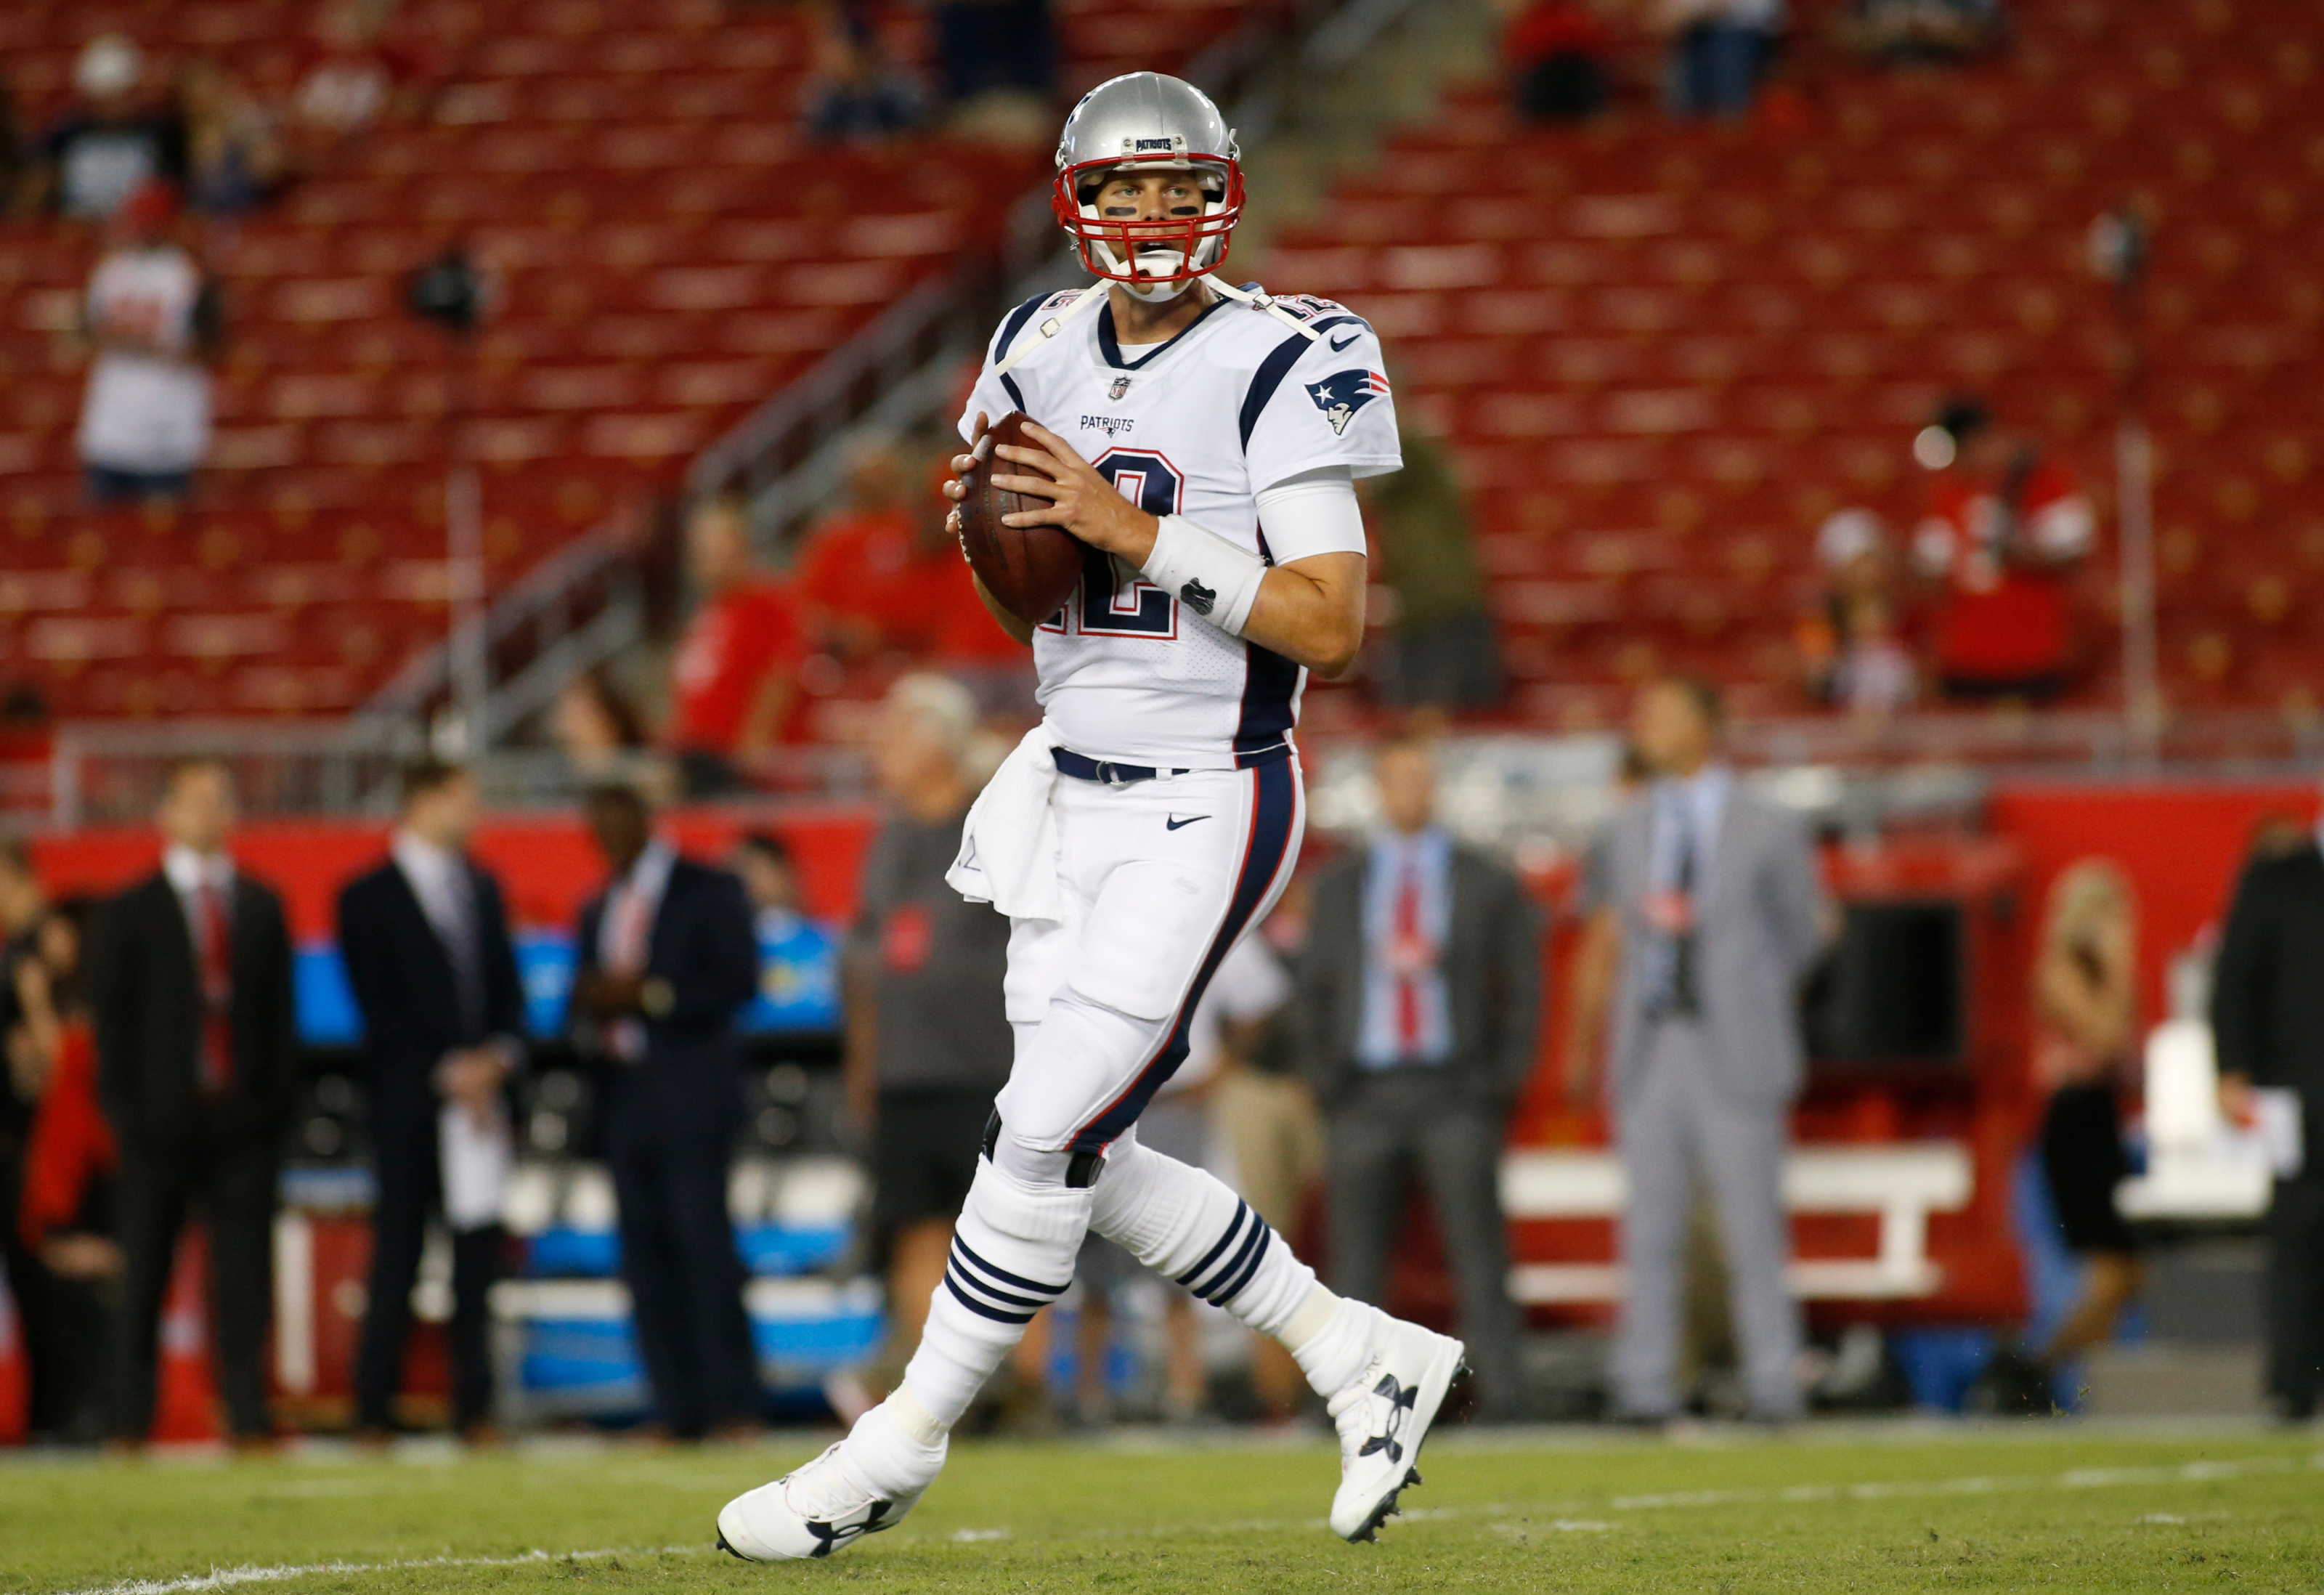 New England Patriots: Top 3 uniforms in franchise history